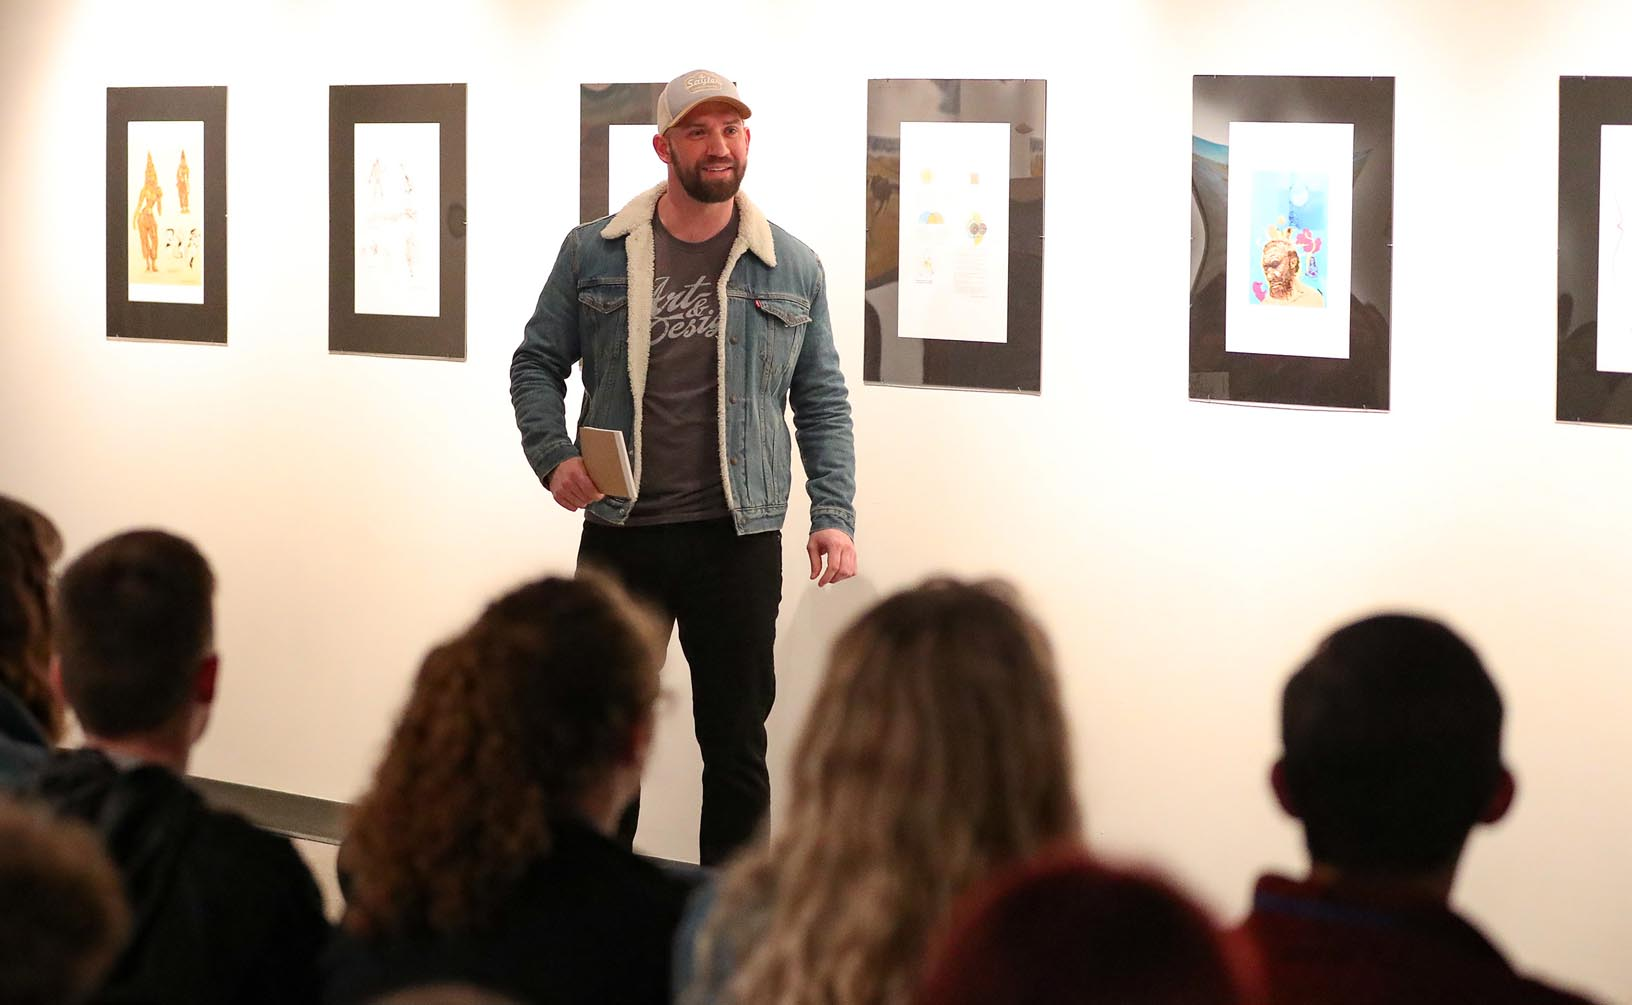 Kyle Sayler, owner of Sayler Screenprinting in Kearney, talks to high school students attending Wednesday's Imagination Day event at UNK. Sayler graduated from UNK in 2011 with a bachelor's degree in visual communication and design.